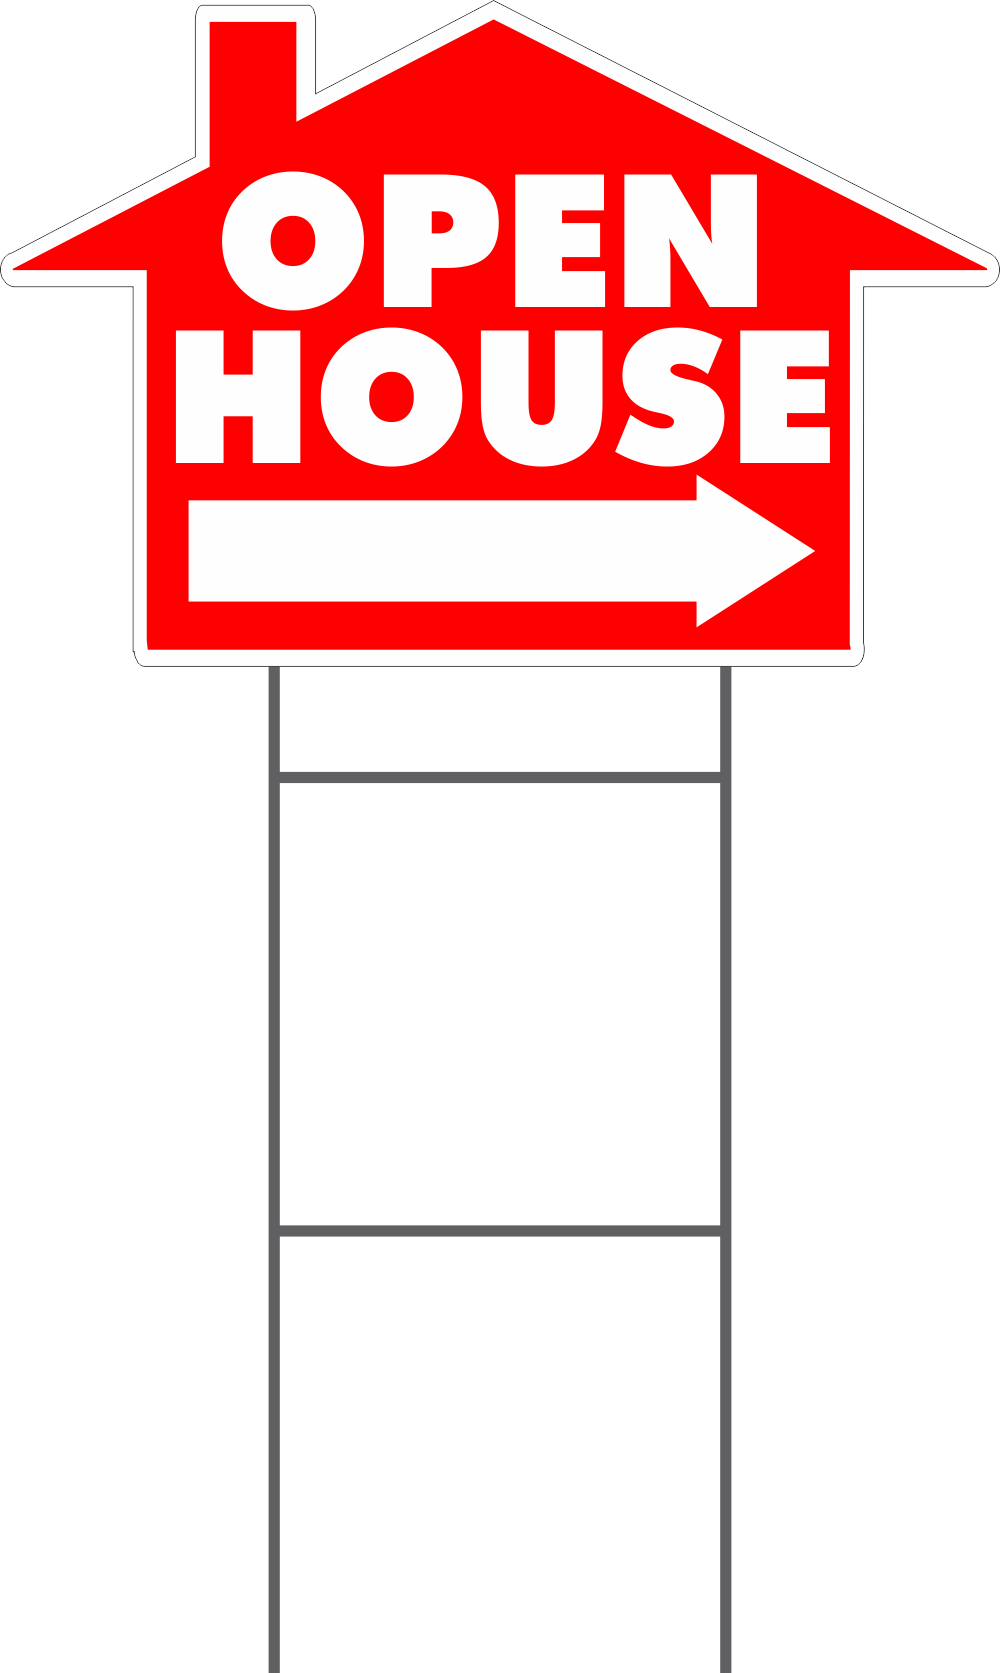 Open House House Shaped Yard Sign | Sign Screen~Yard Signs, Security ...